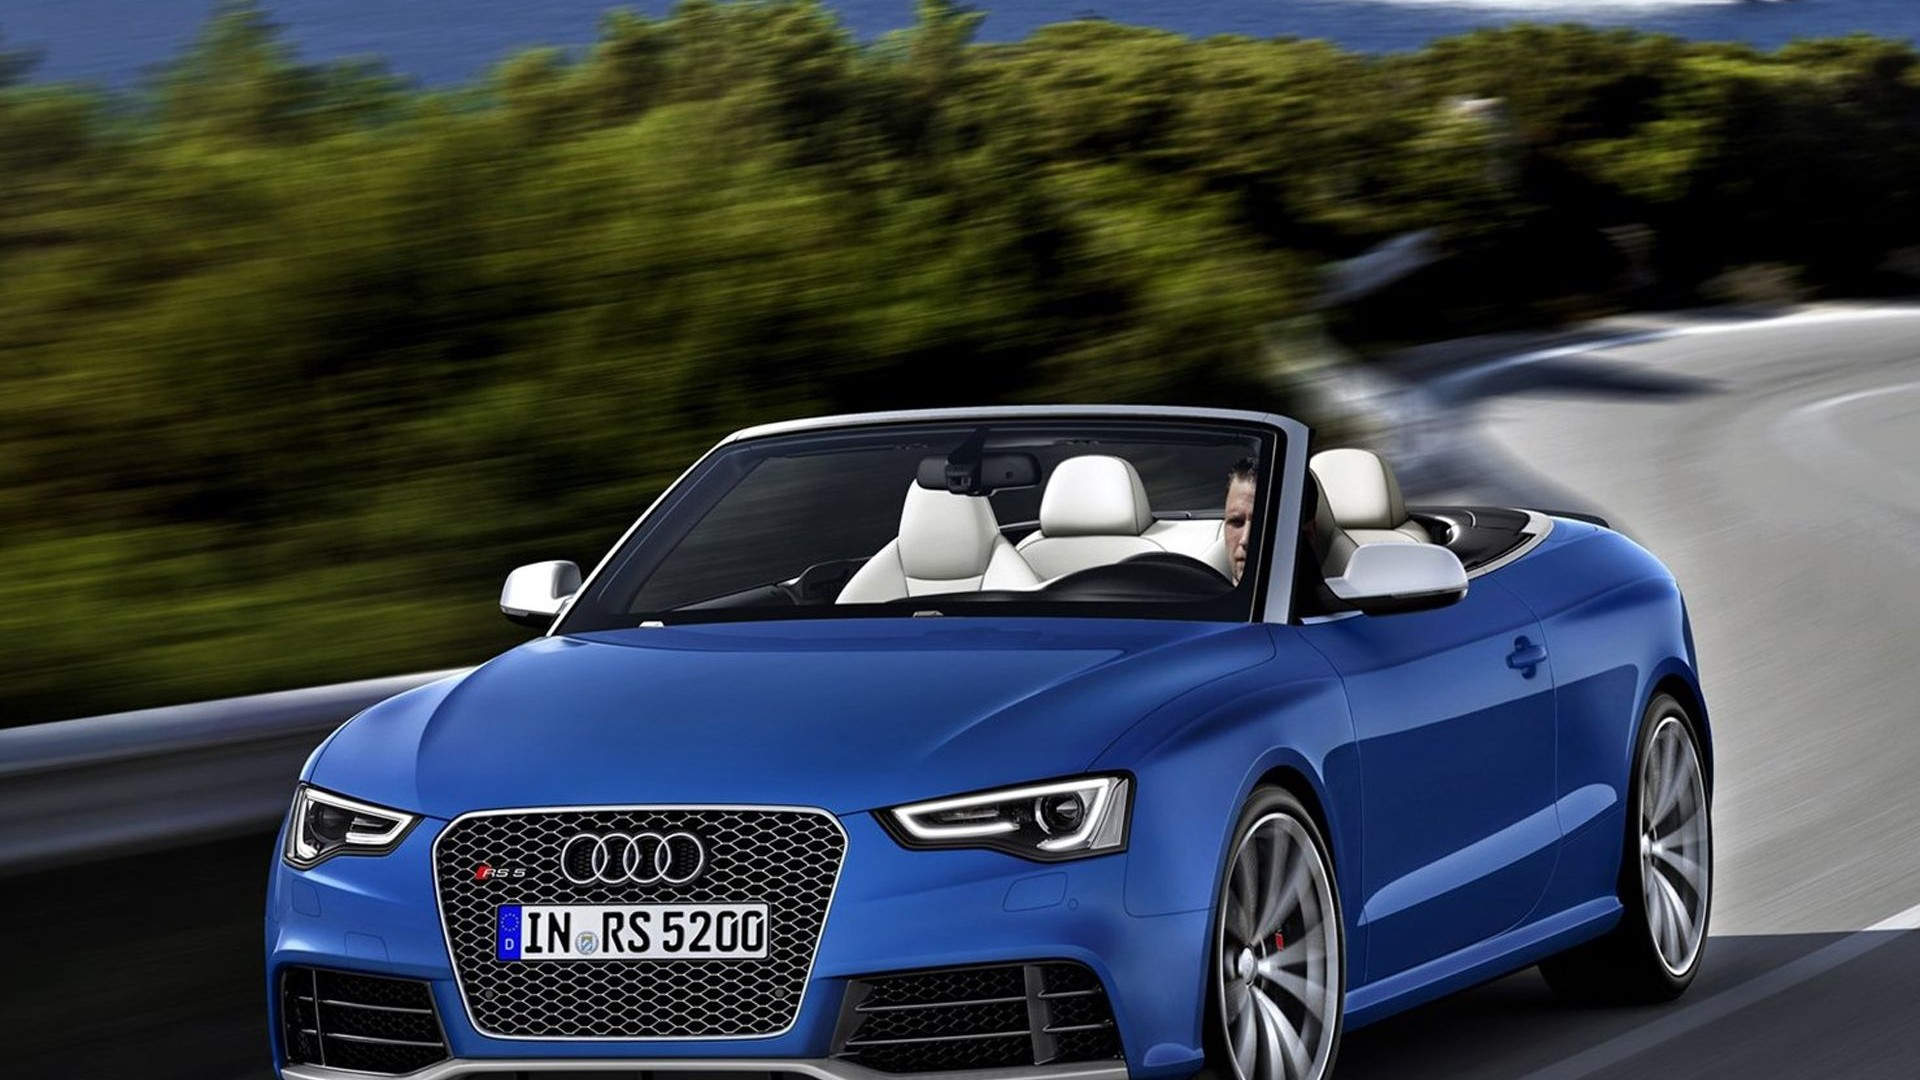 Audi RS5 Cabriolet  Sports Car HD Wallpaper